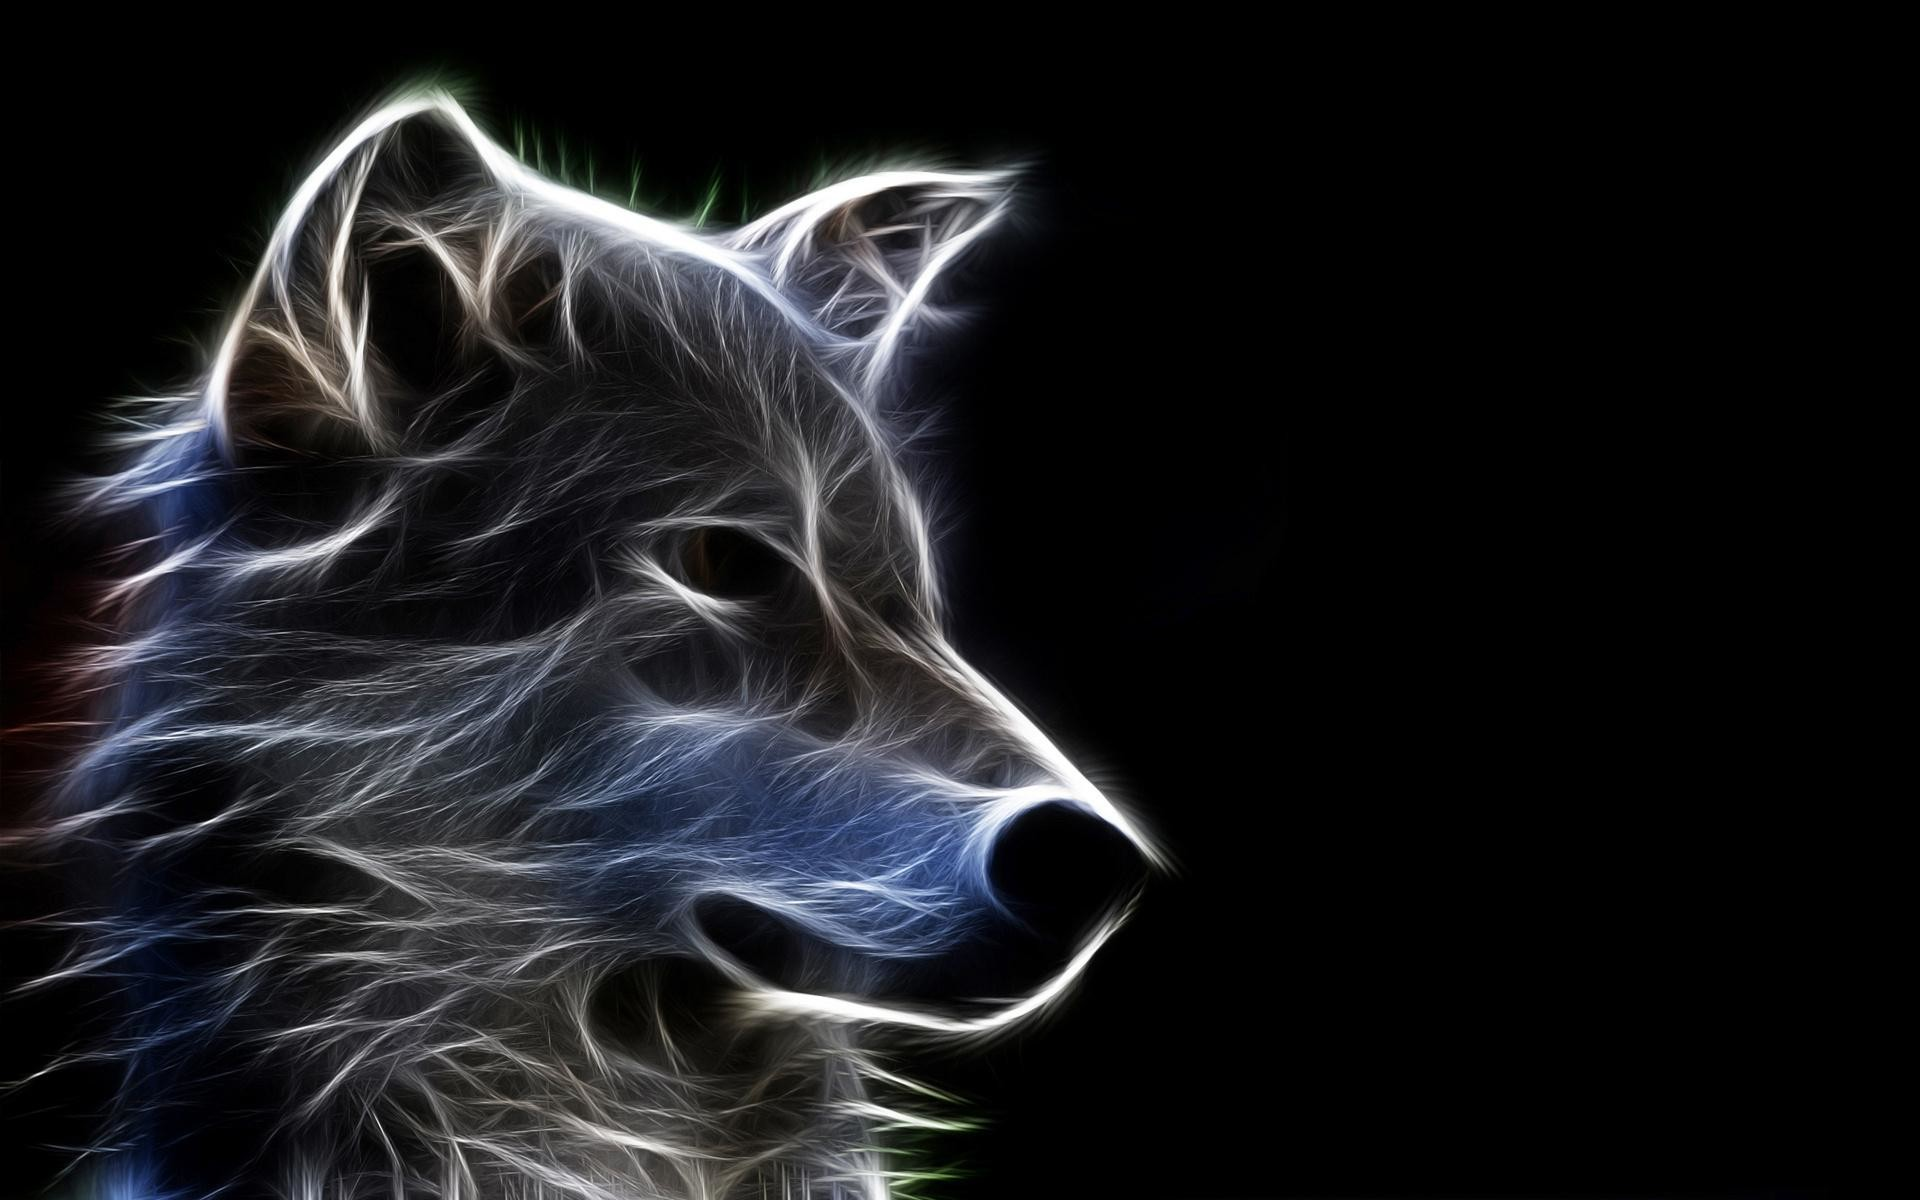 Abstract Wolf Art Wallpapers – https://hdwallpapersf.com/abstract-wolf